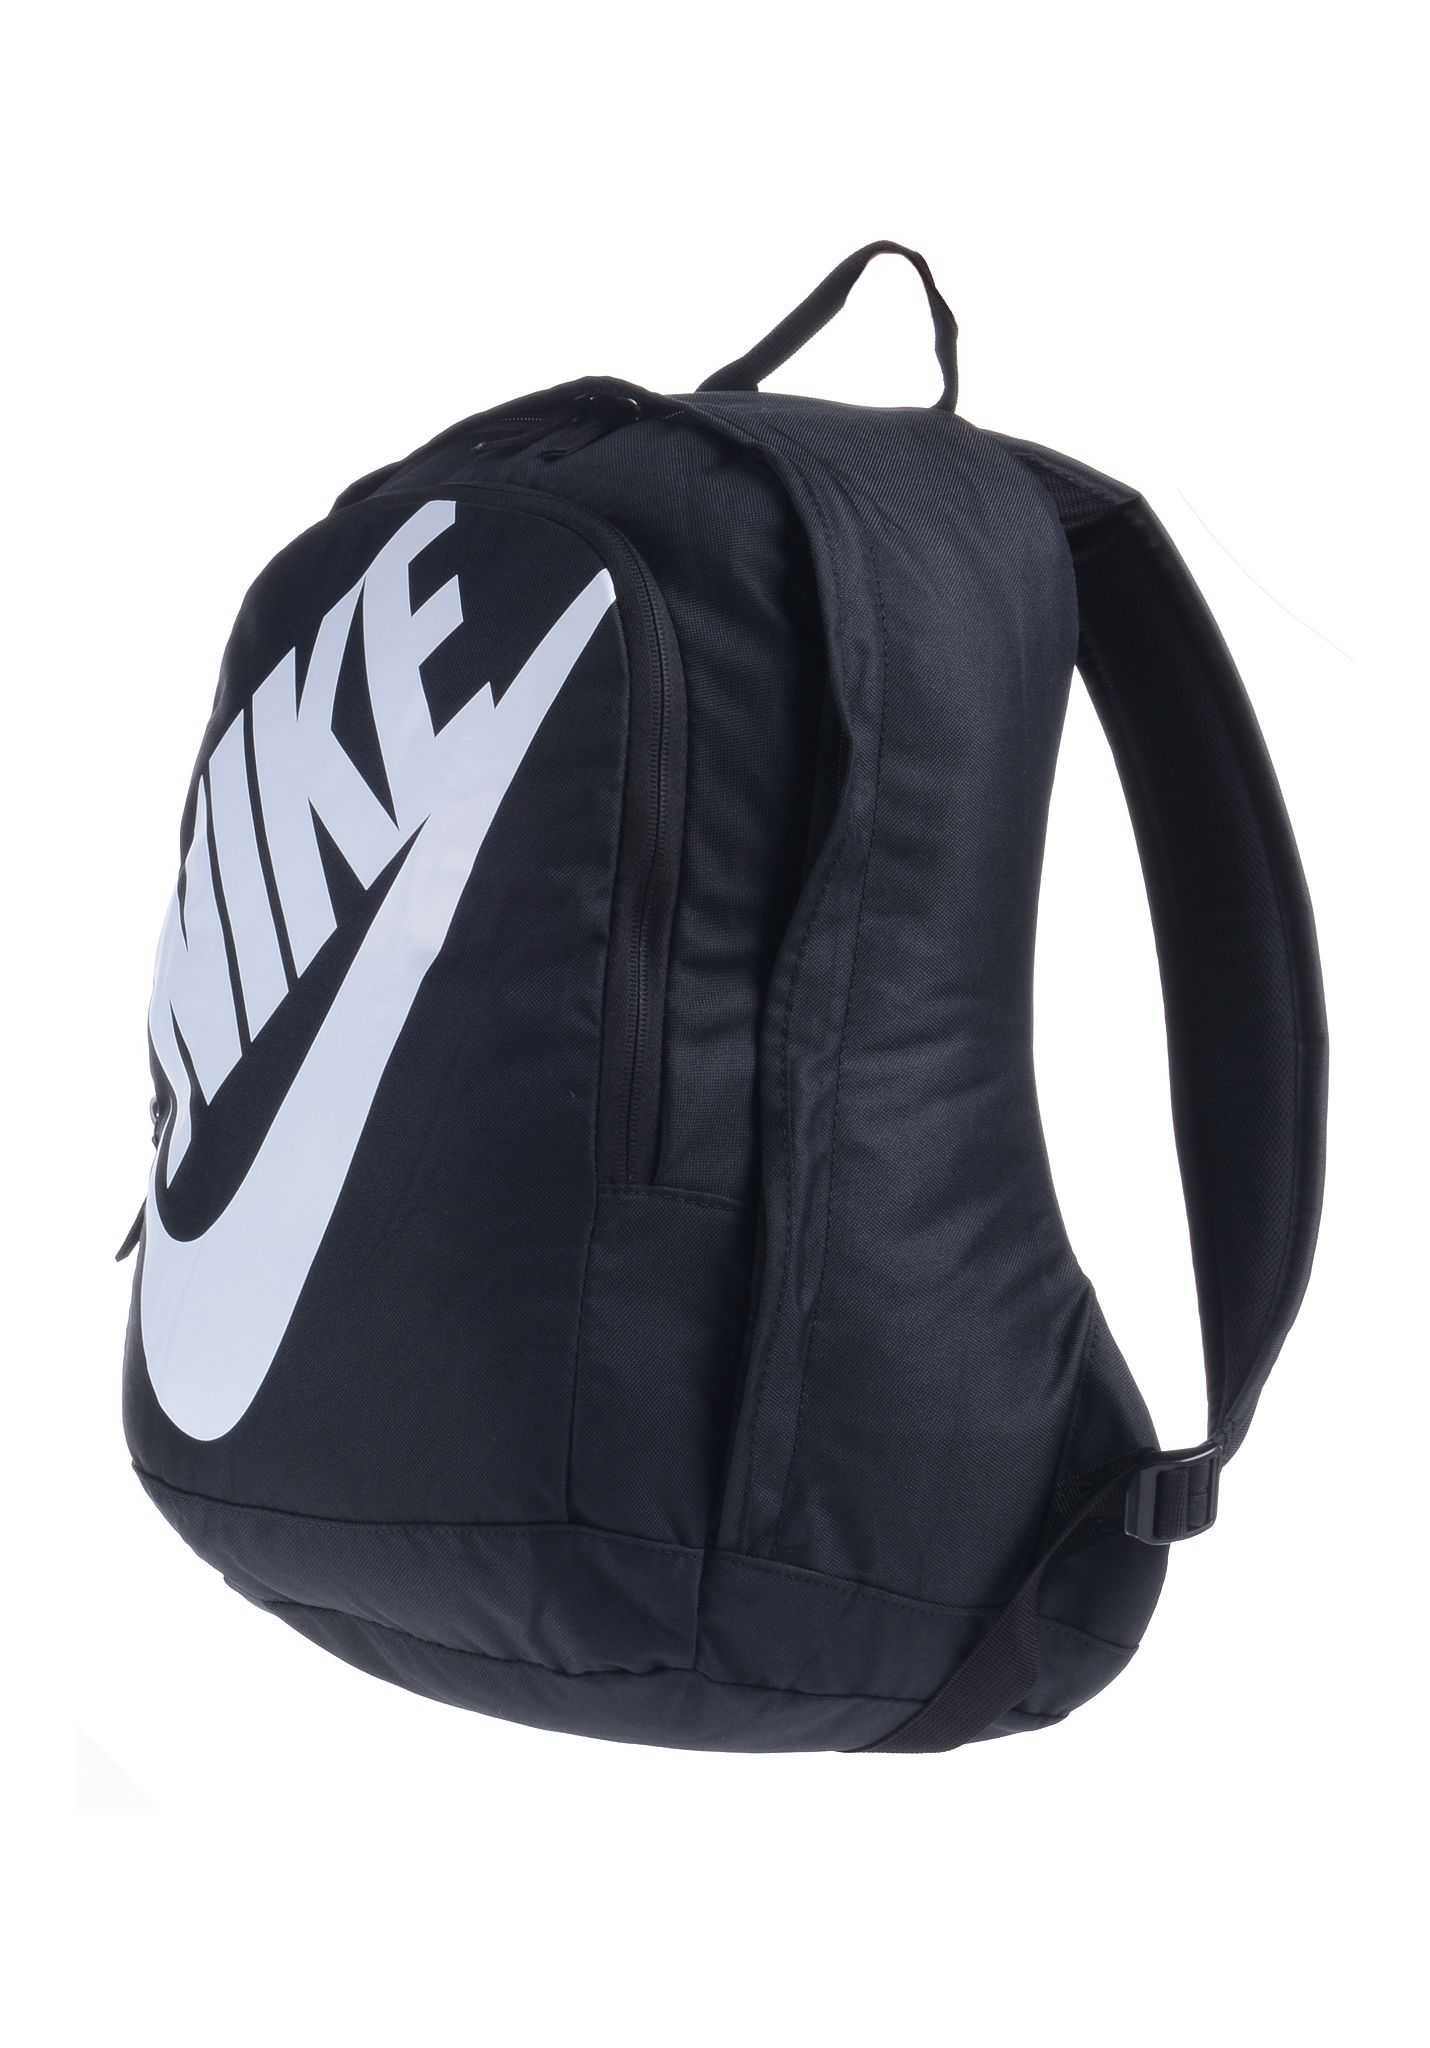 NIKE SPORTSWEAR Hayward Futura M 2.0 - Backpack for Men - Black - Planet  Sports 8d3b7bc5efff2